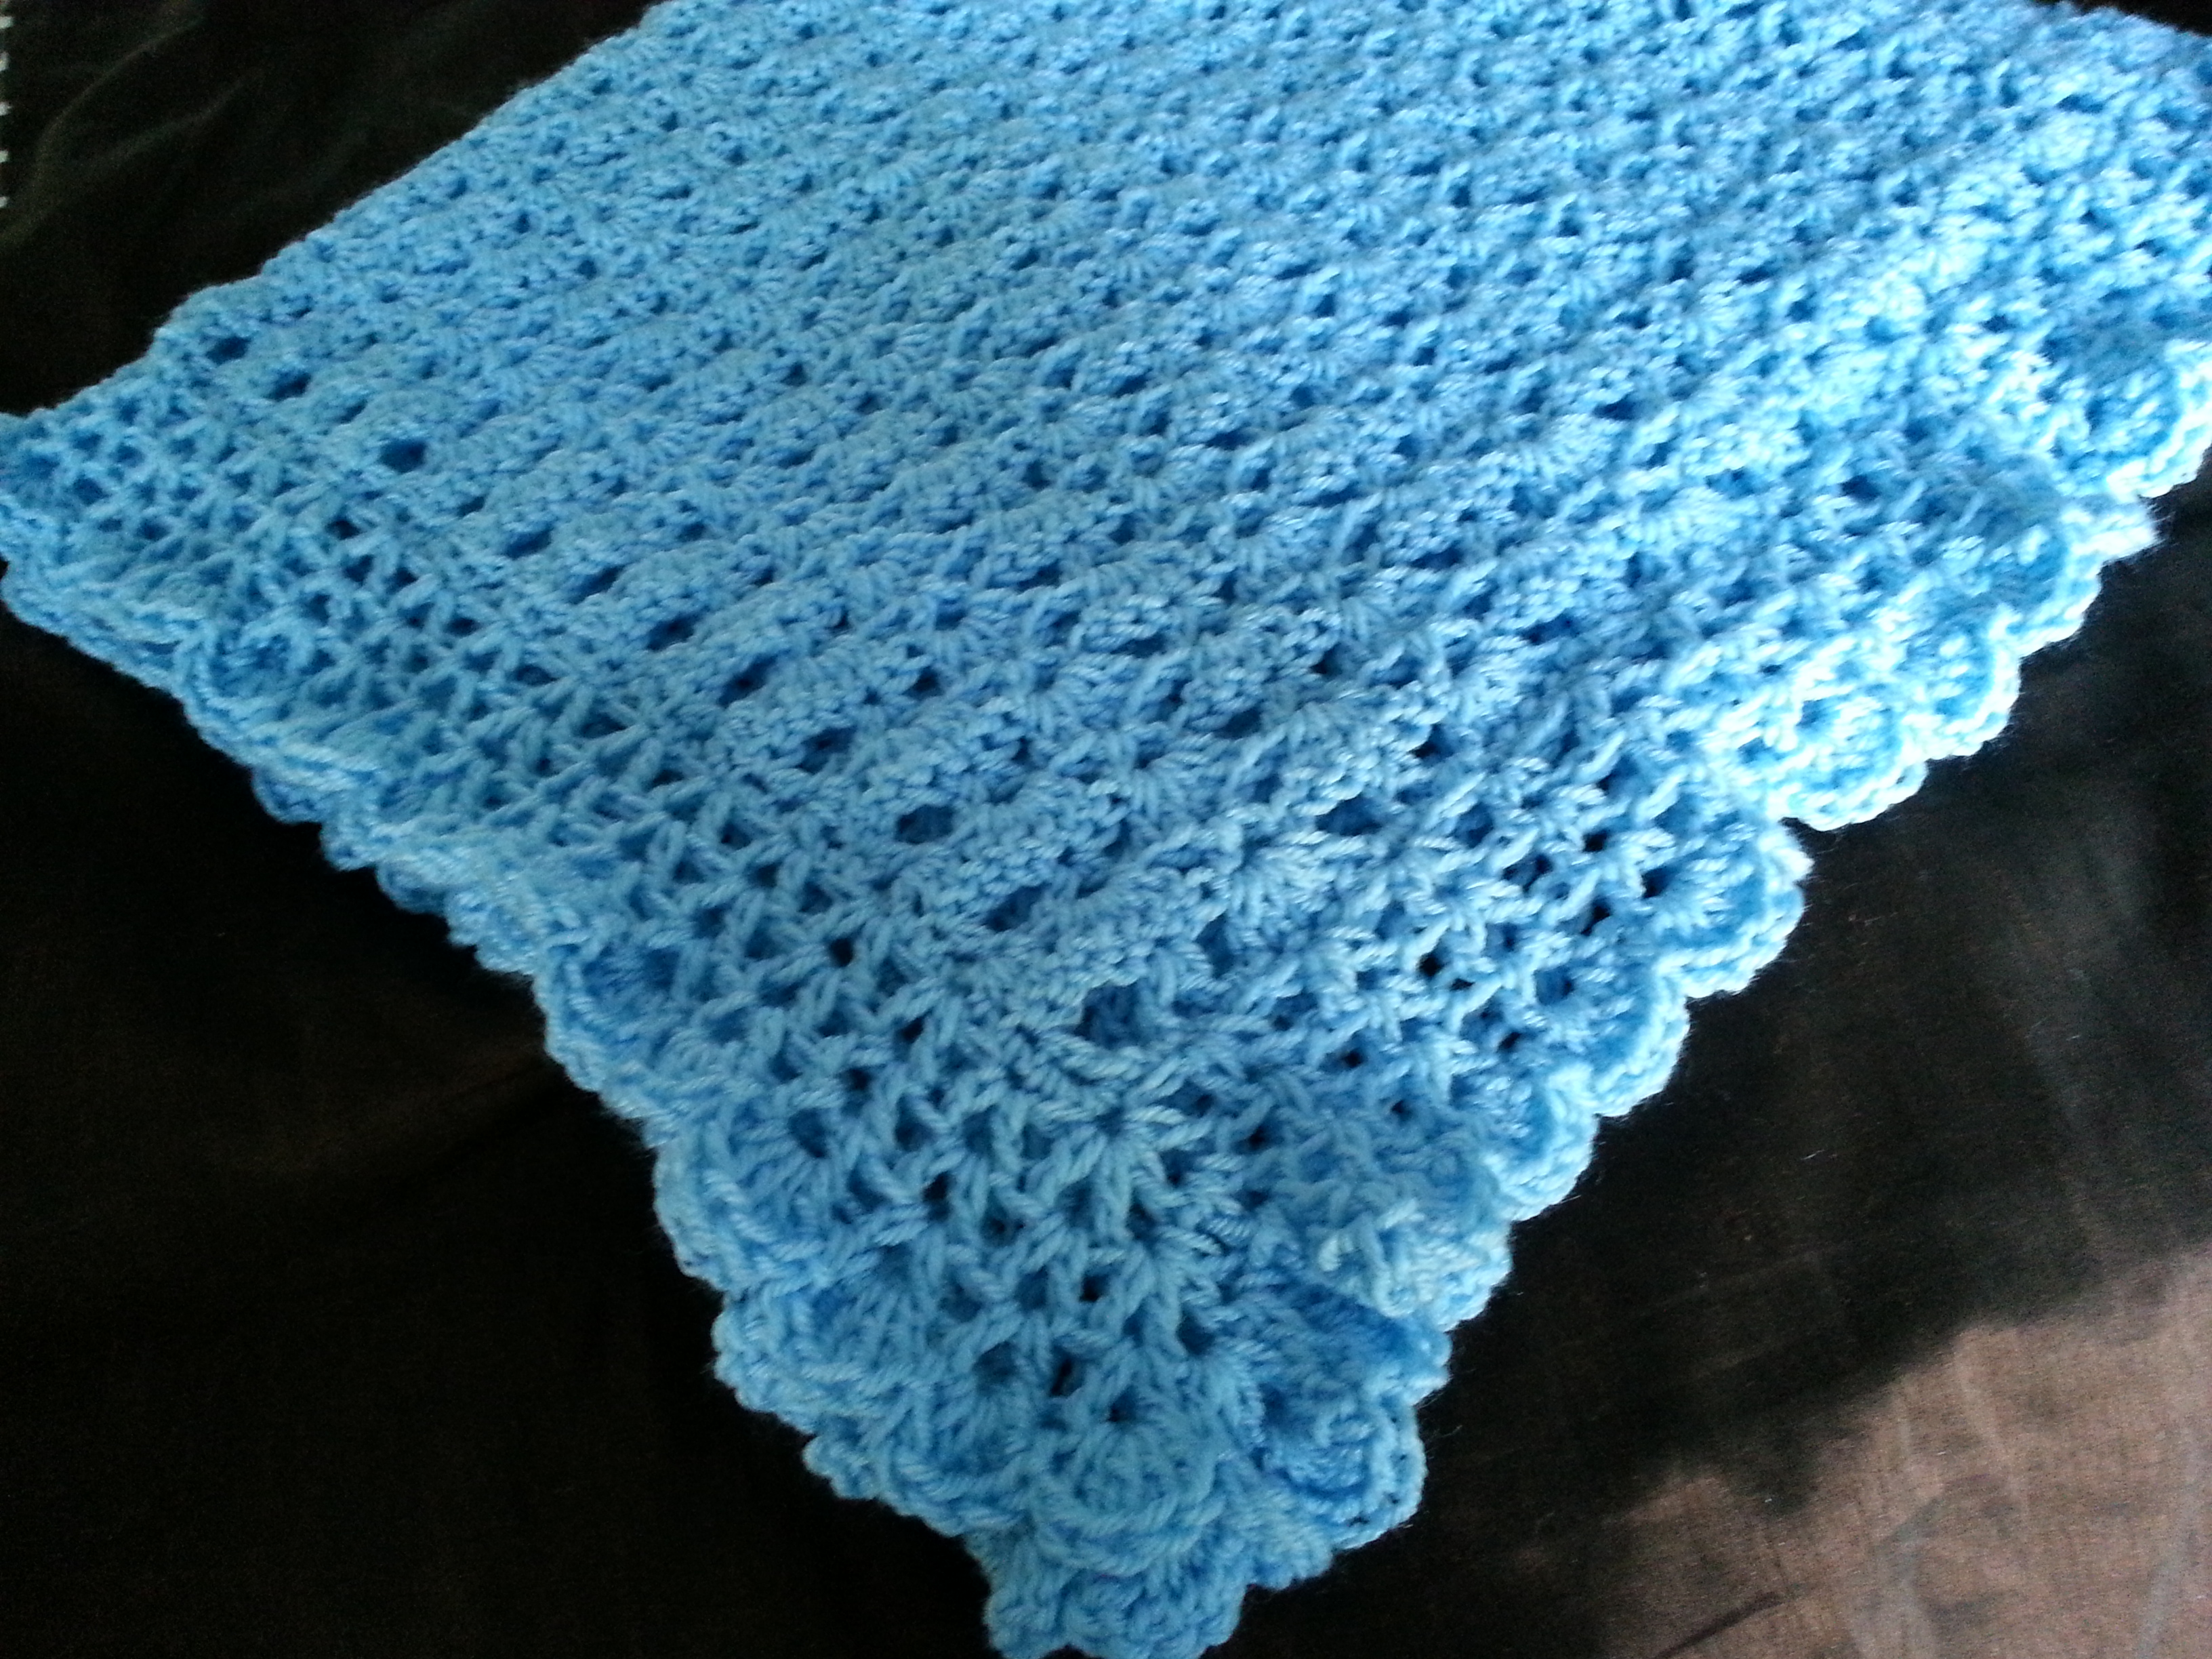 Crocheting Define : completed 2 everyday dish cloths. Each one took less than 3 hrs and ...